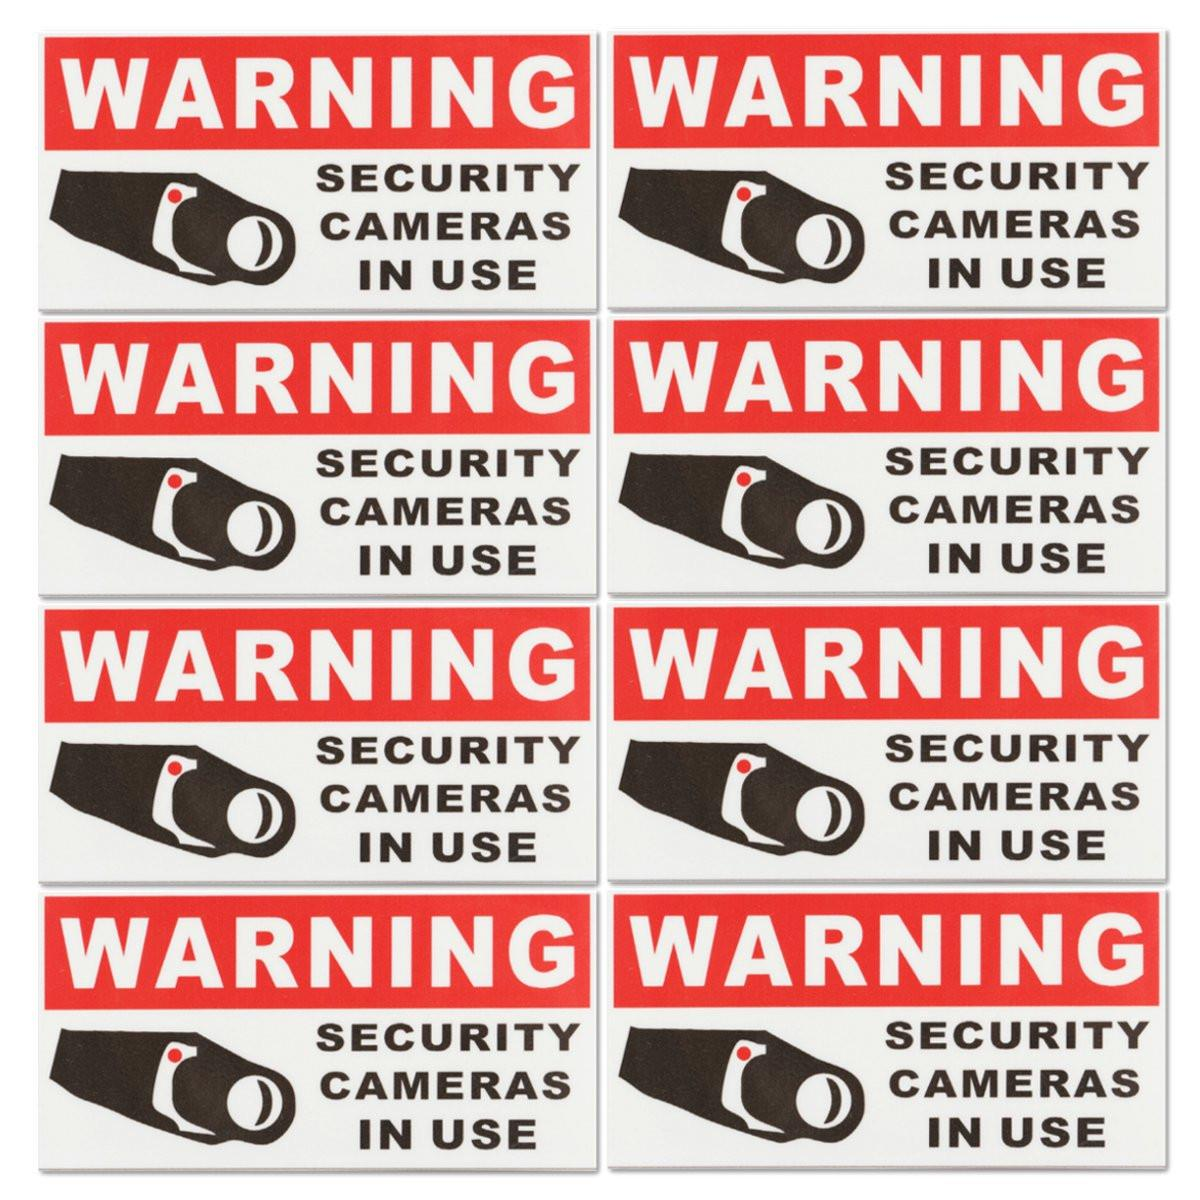 NEW 8Pcs SECURITY CAMERA IN USE  Waterproof Self-adhensive Warning Stickers Safety Signs Decal signs